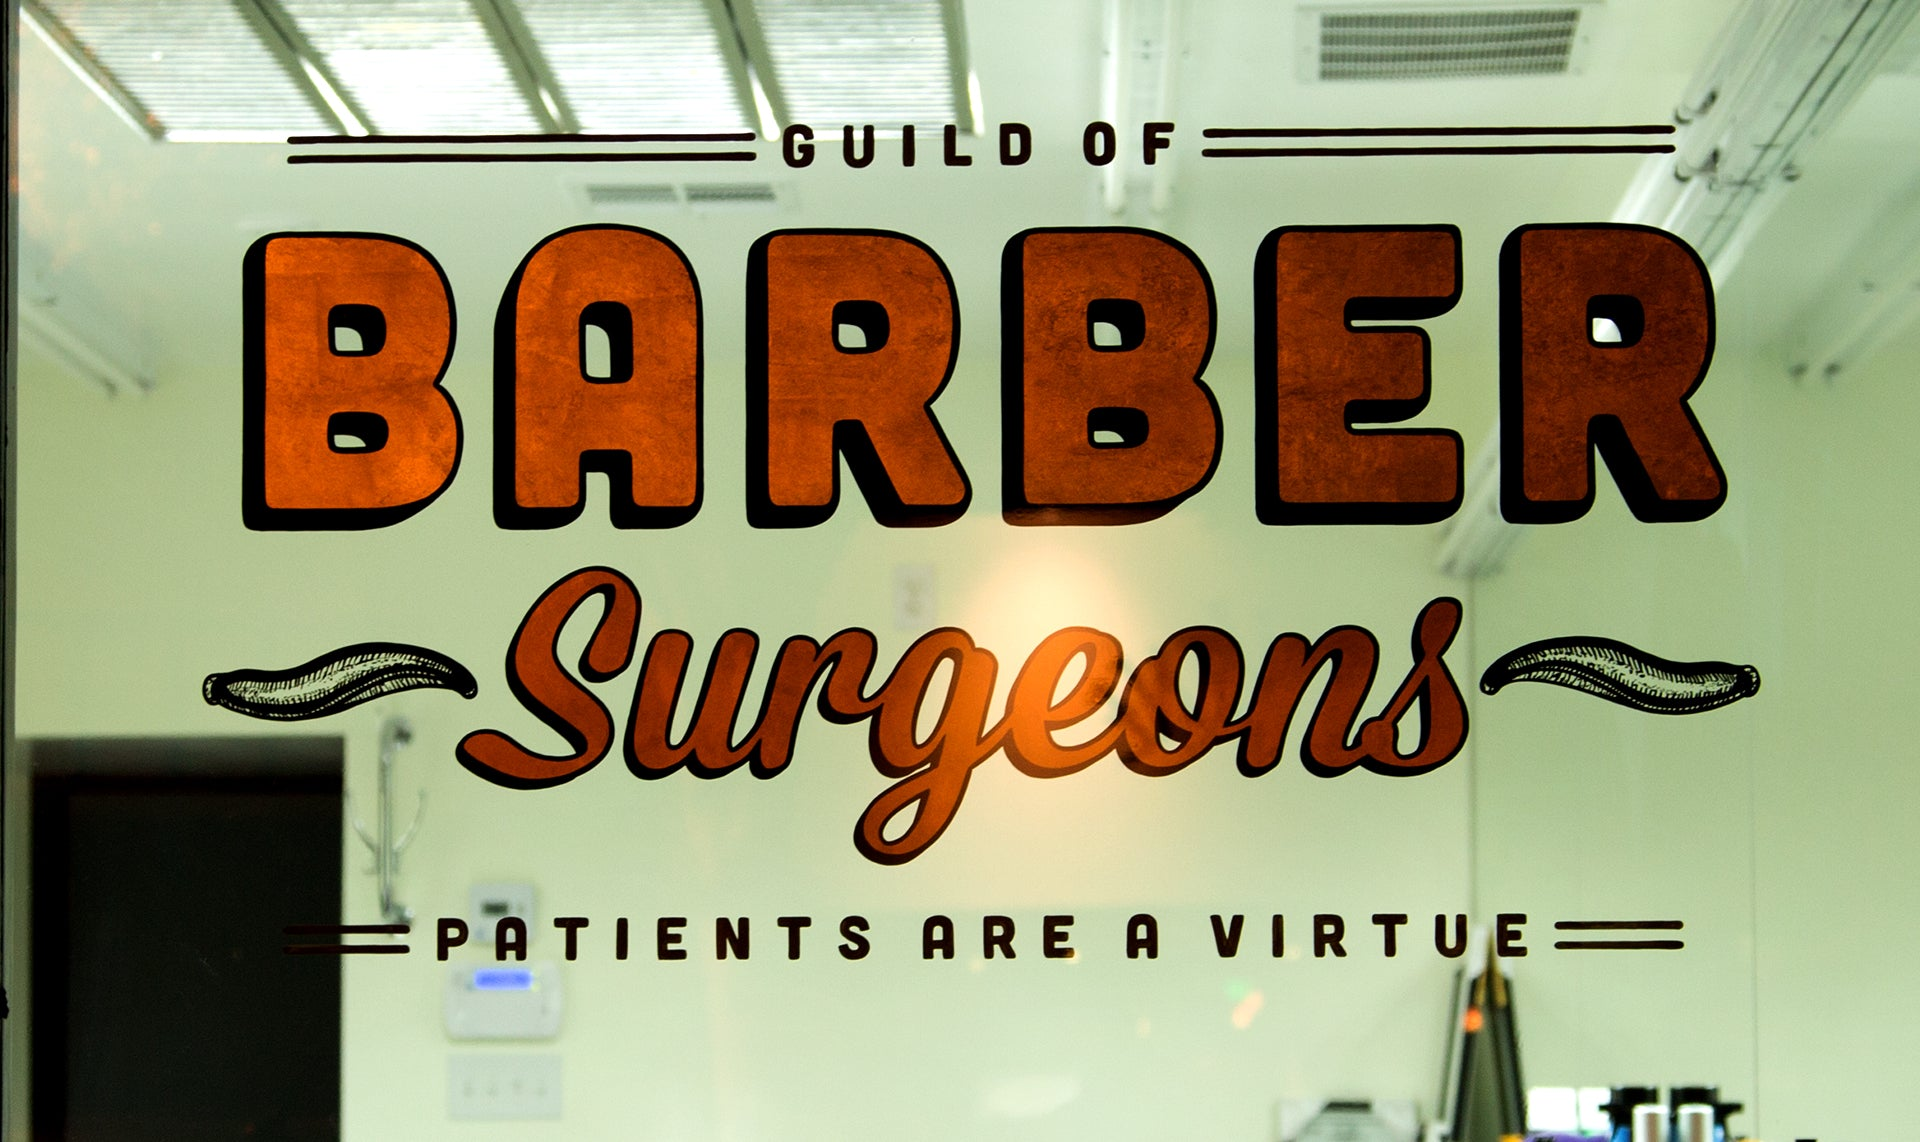 Fullerton's Barber Surgeons where patients are a virtue